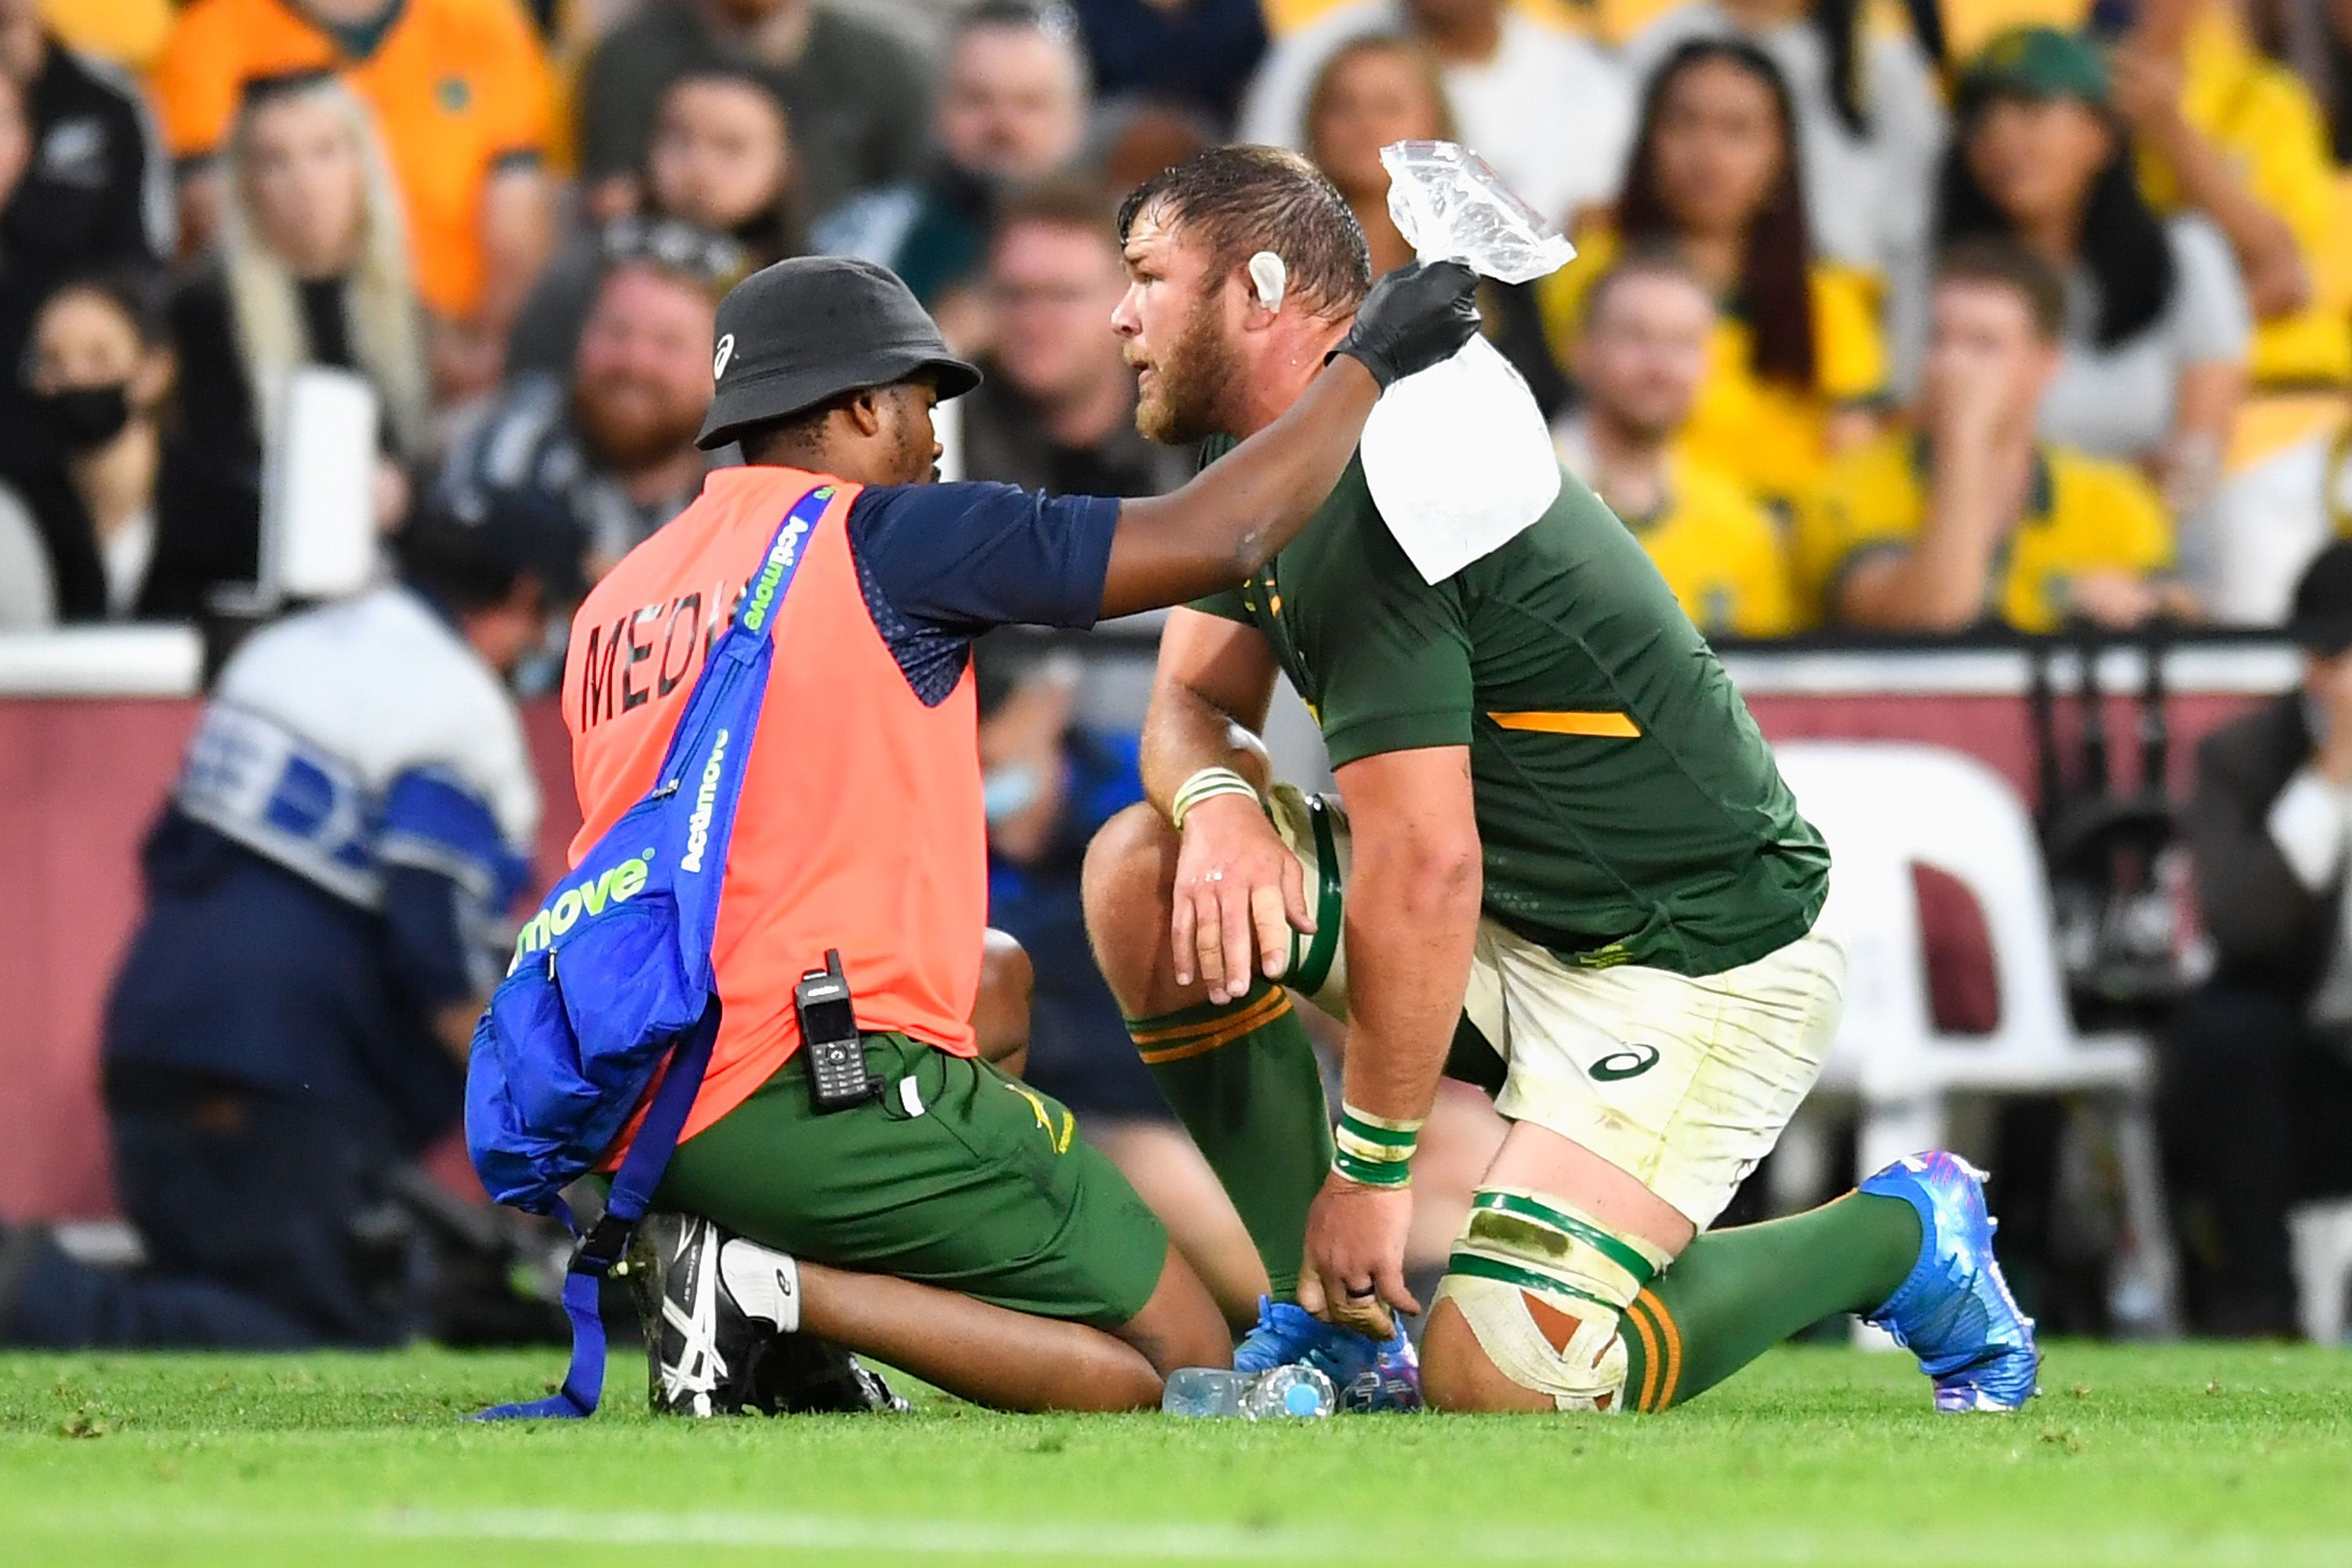 Rugby Championship: Springboks coach Jacques Nienaber apologises to fans after second straight loss to Wallabies